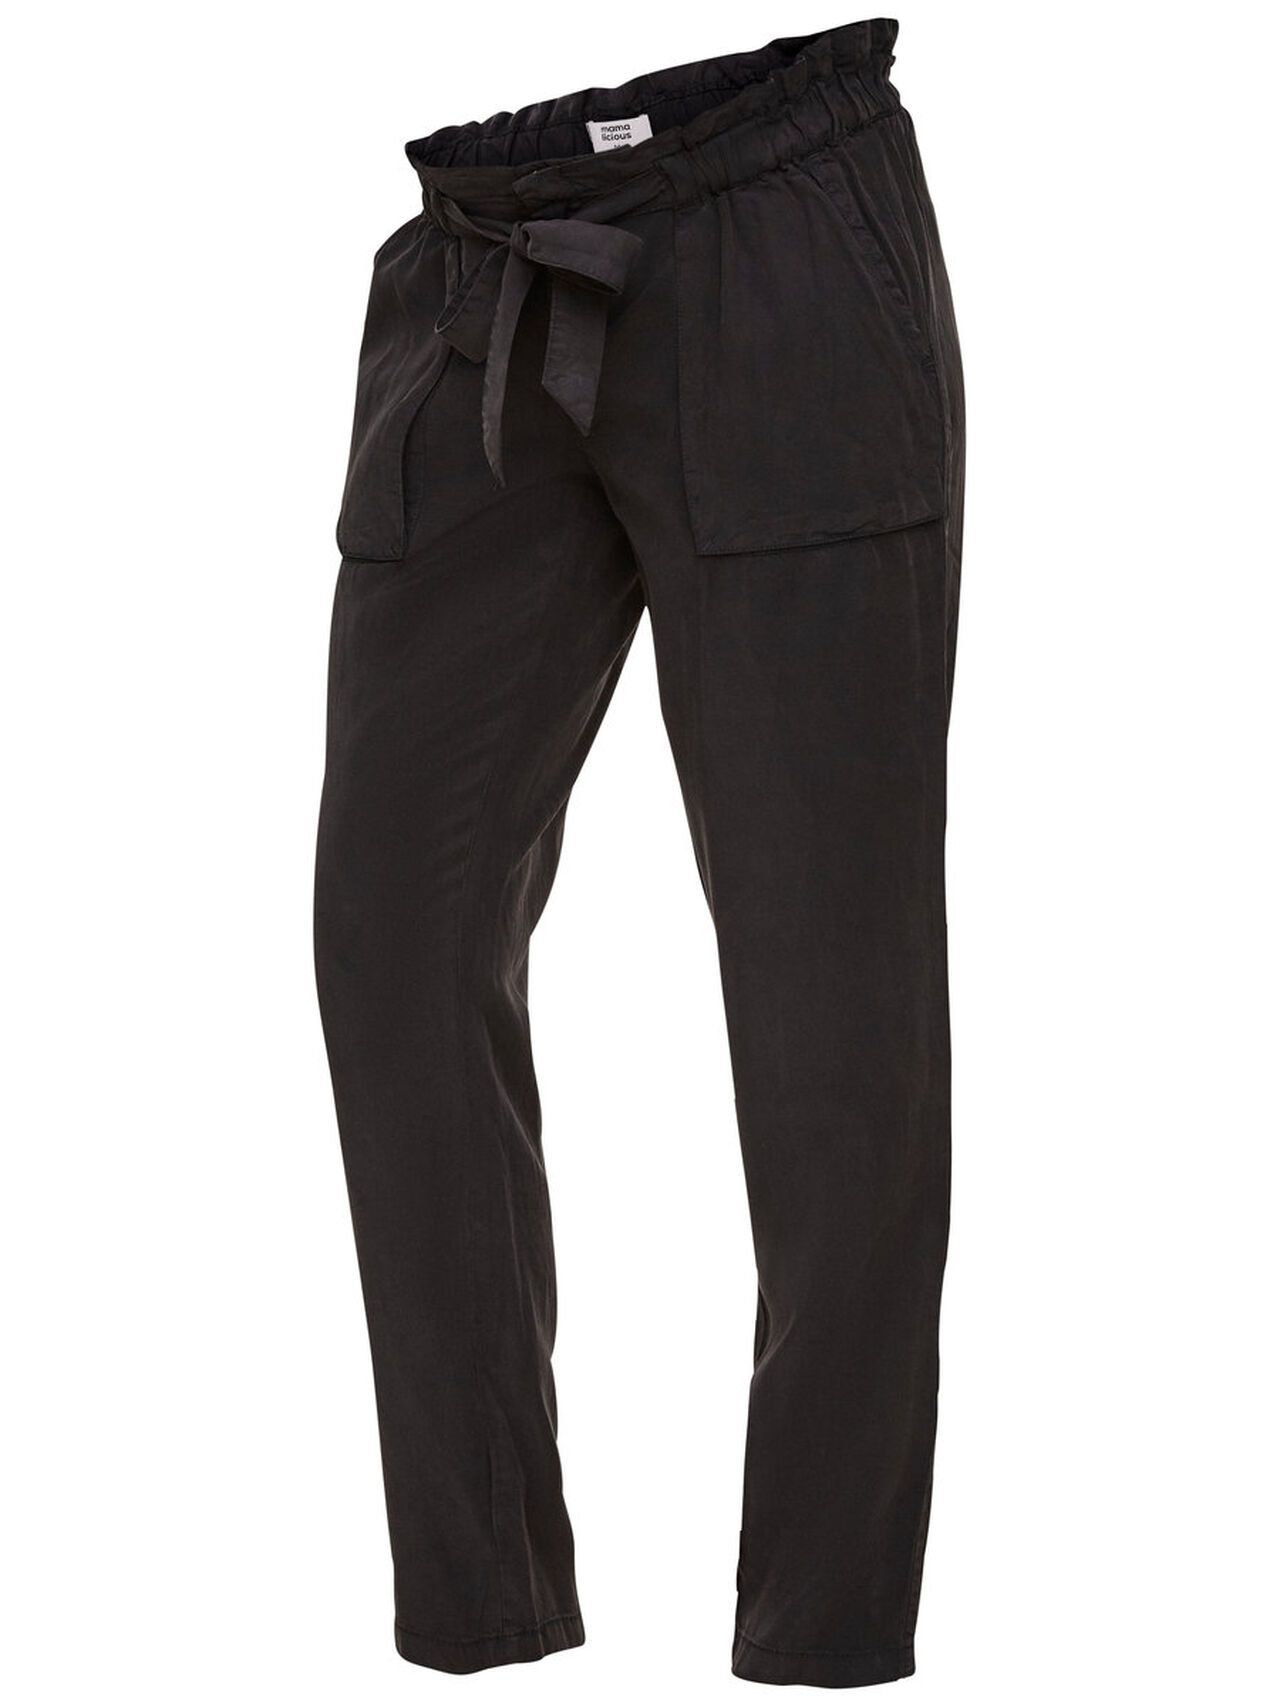 MAMA.LICIOUS Woven Trousers Women Black